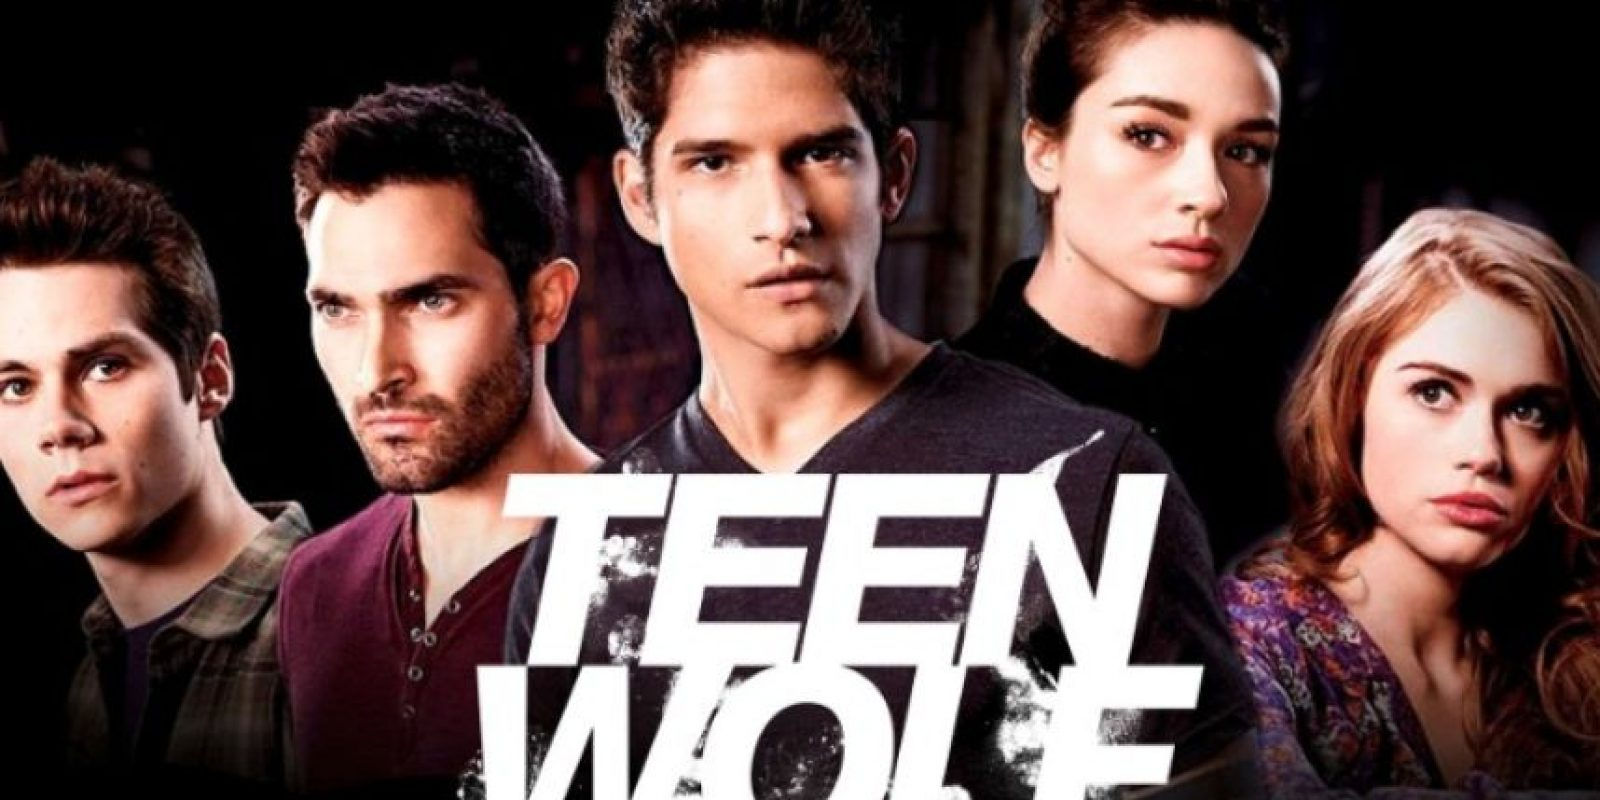 Foto: vía facebook.com/teenwolf